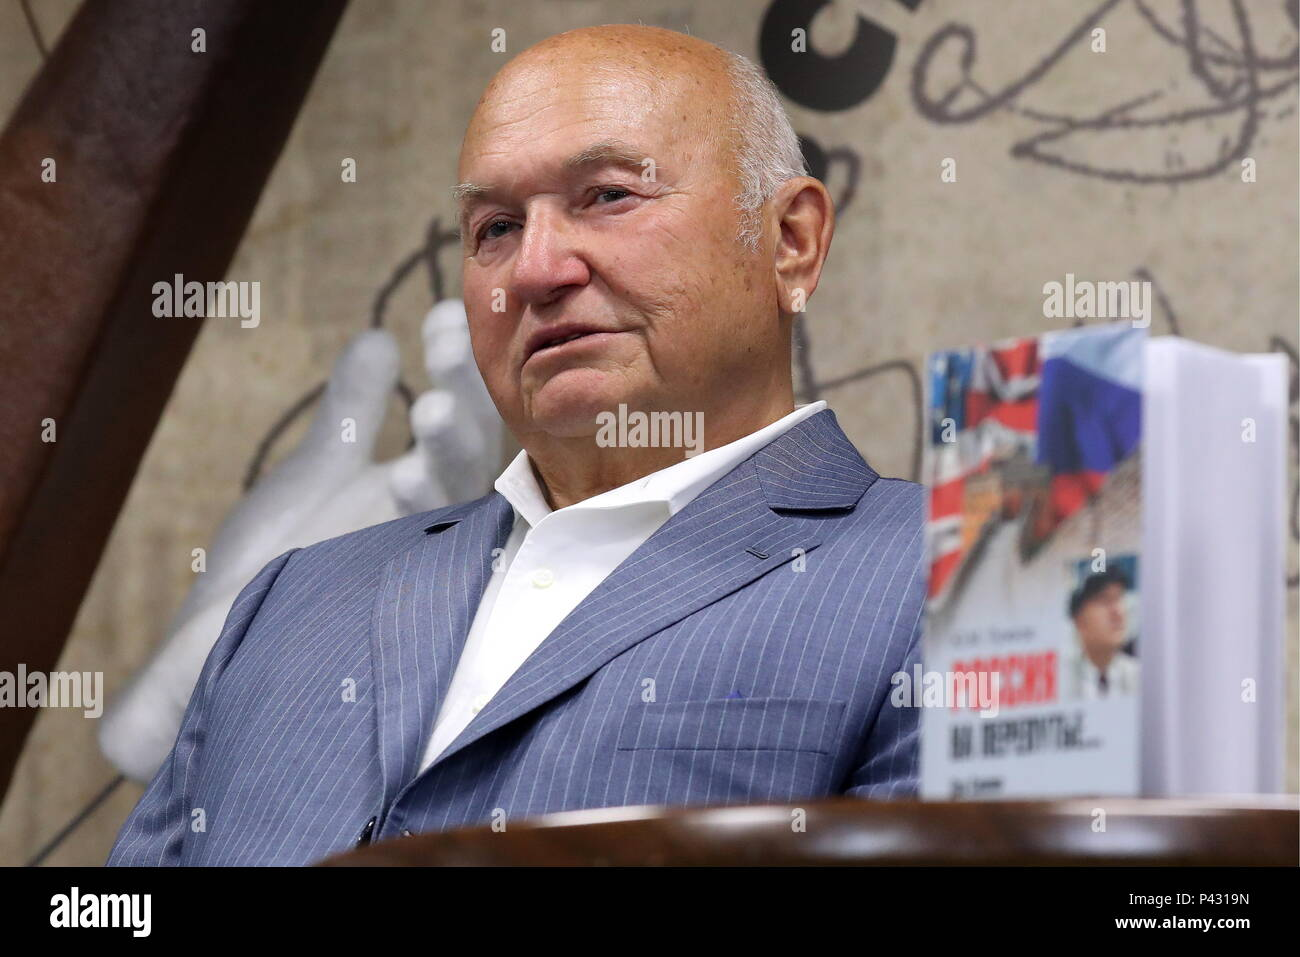 In Moscow, the former mayor Luzhkov was hospitalized 12/23/2016 54